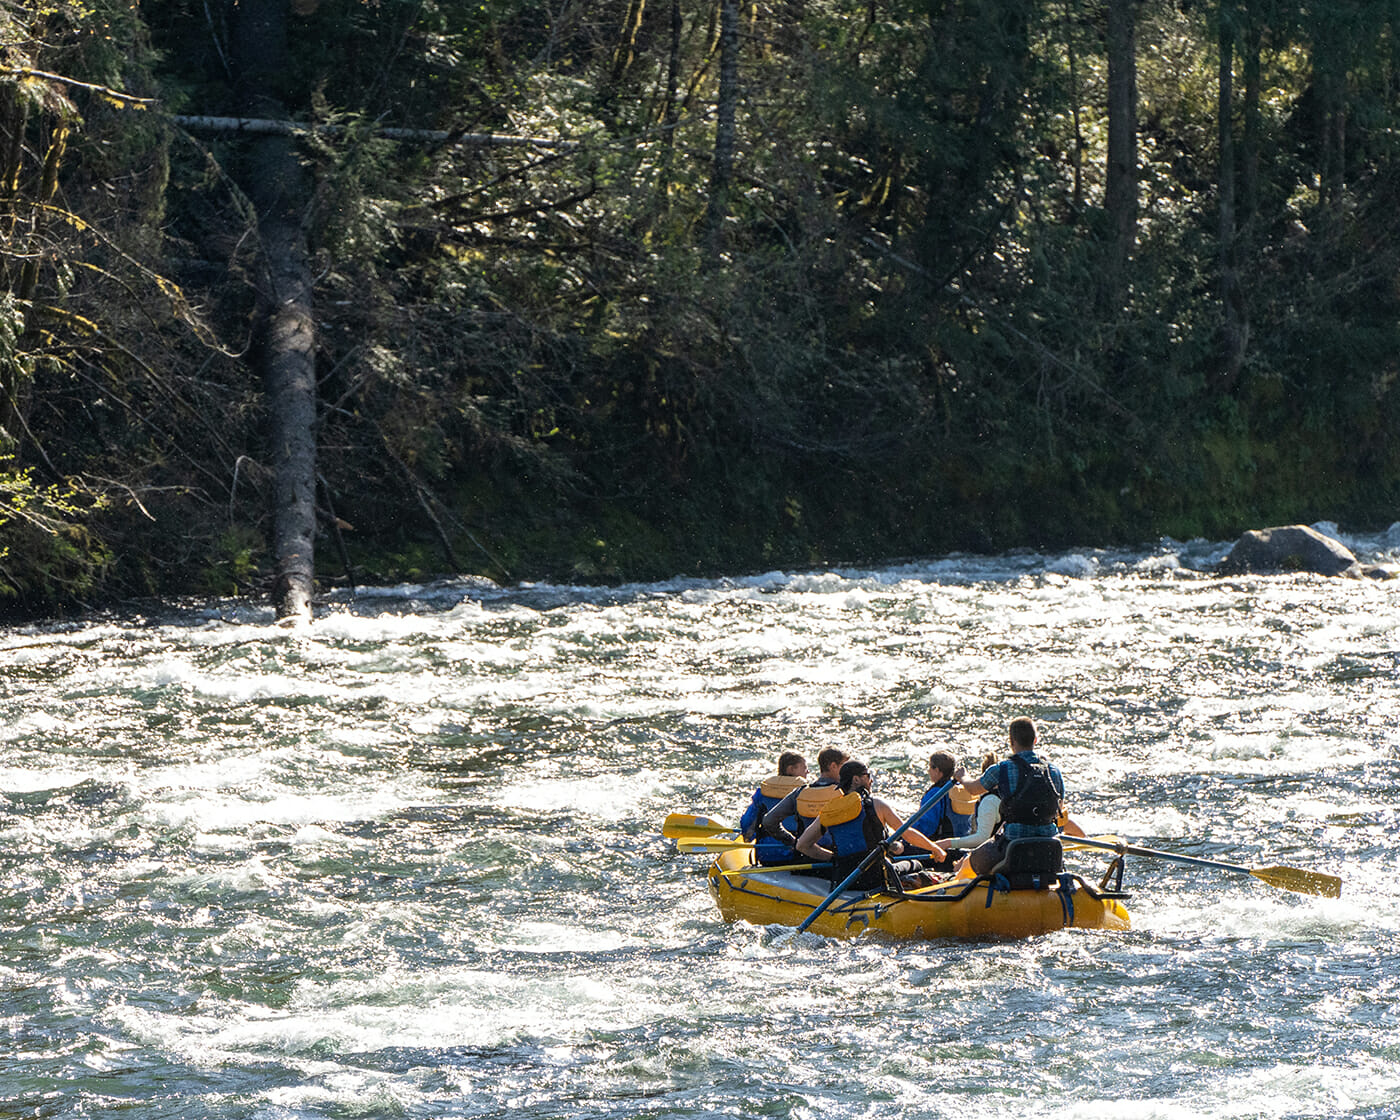 Rafting with First Nature Tours